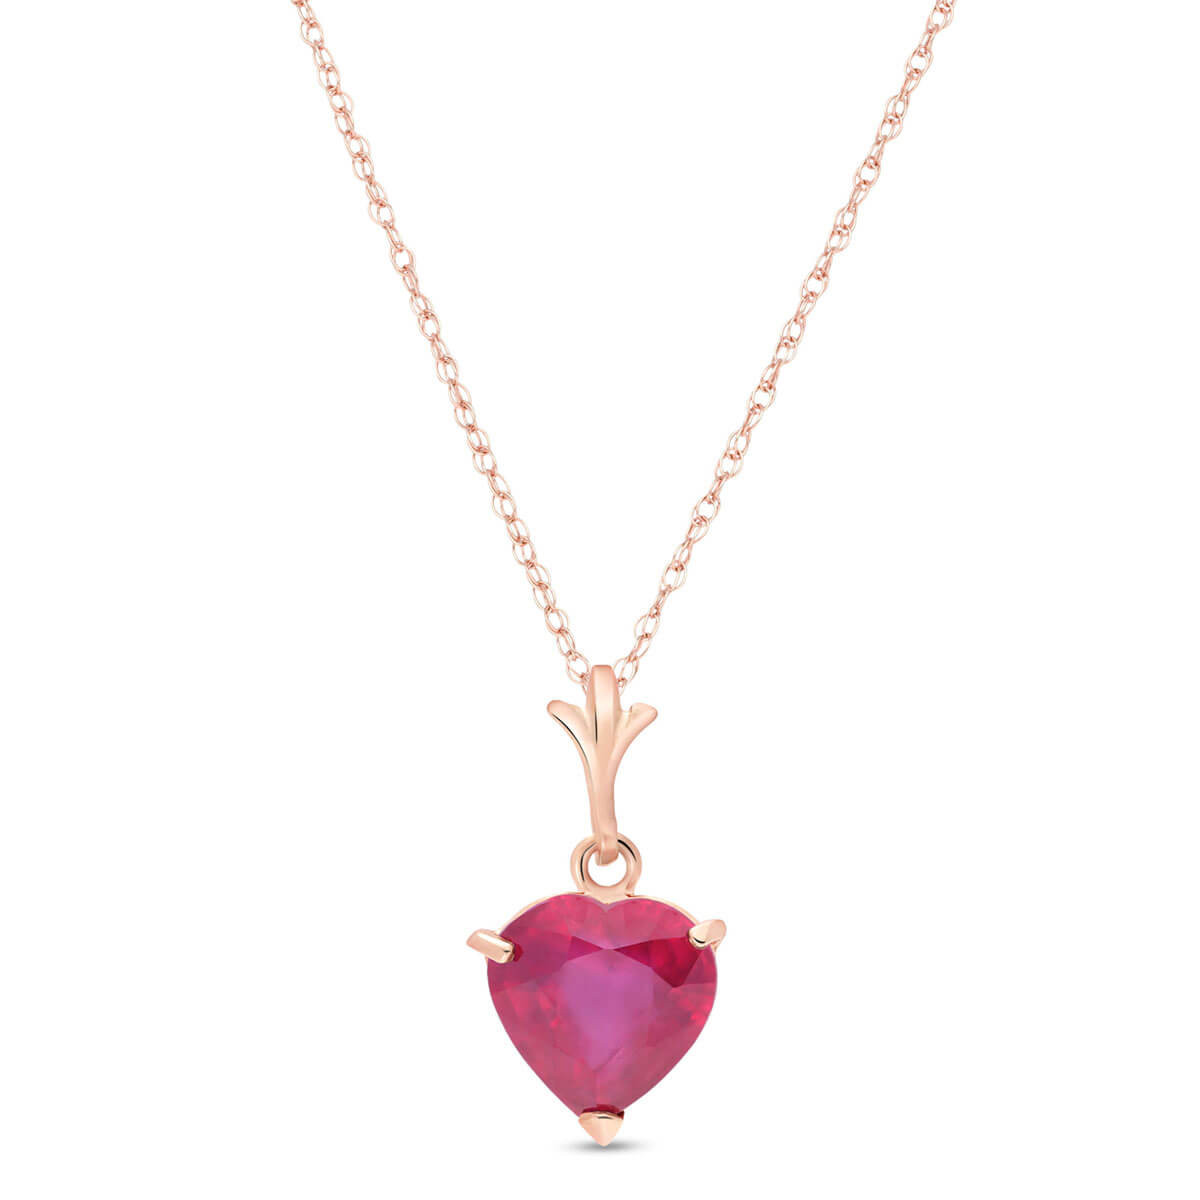 Ruby Heart Pendant Necklace 1.45 ct in 9ct Rose Gold